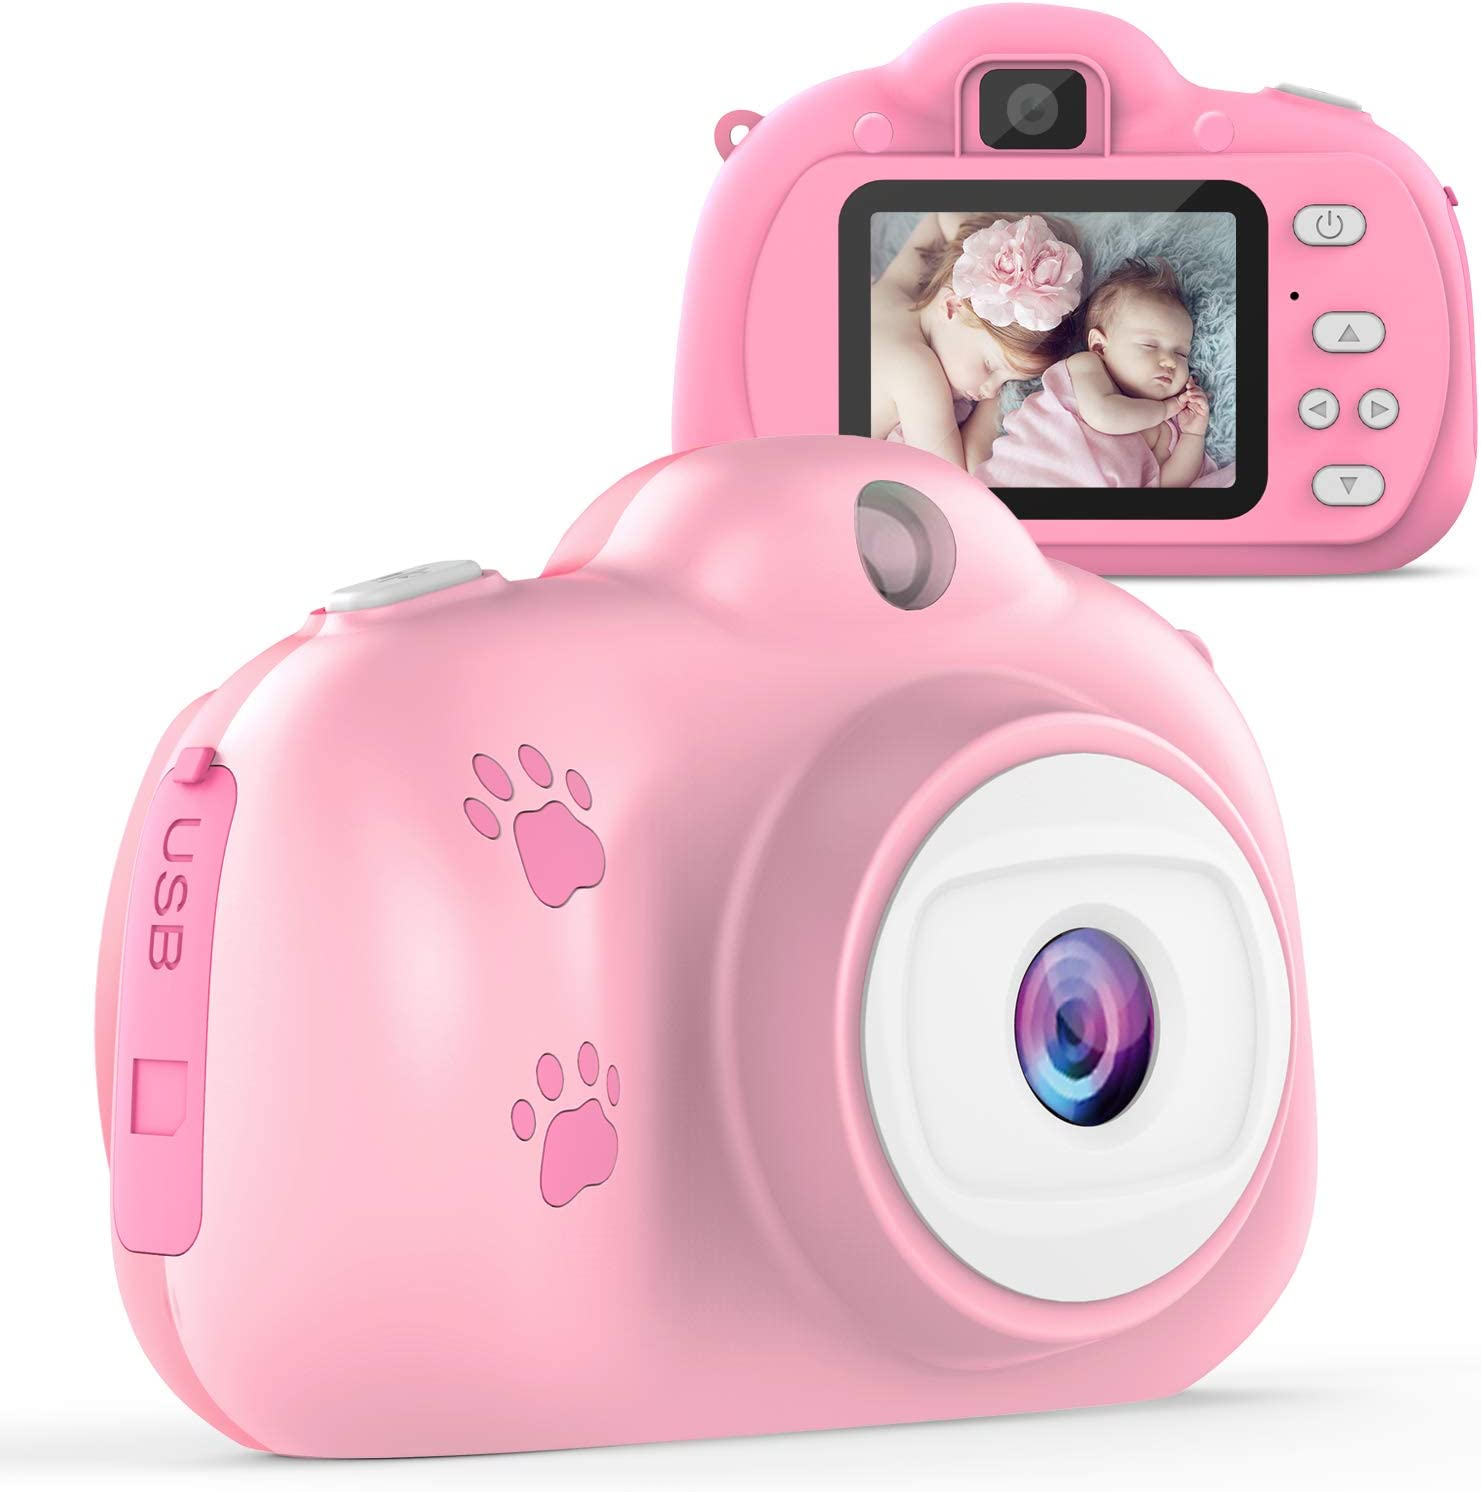 Amazon Com Tecboss Kids Camera Birthday Gifts Toys For 3 10 Year Old Girls Children Digital Cameras For Girls Toys 1280p 8mp With 2 Inch Ips Display Electronics